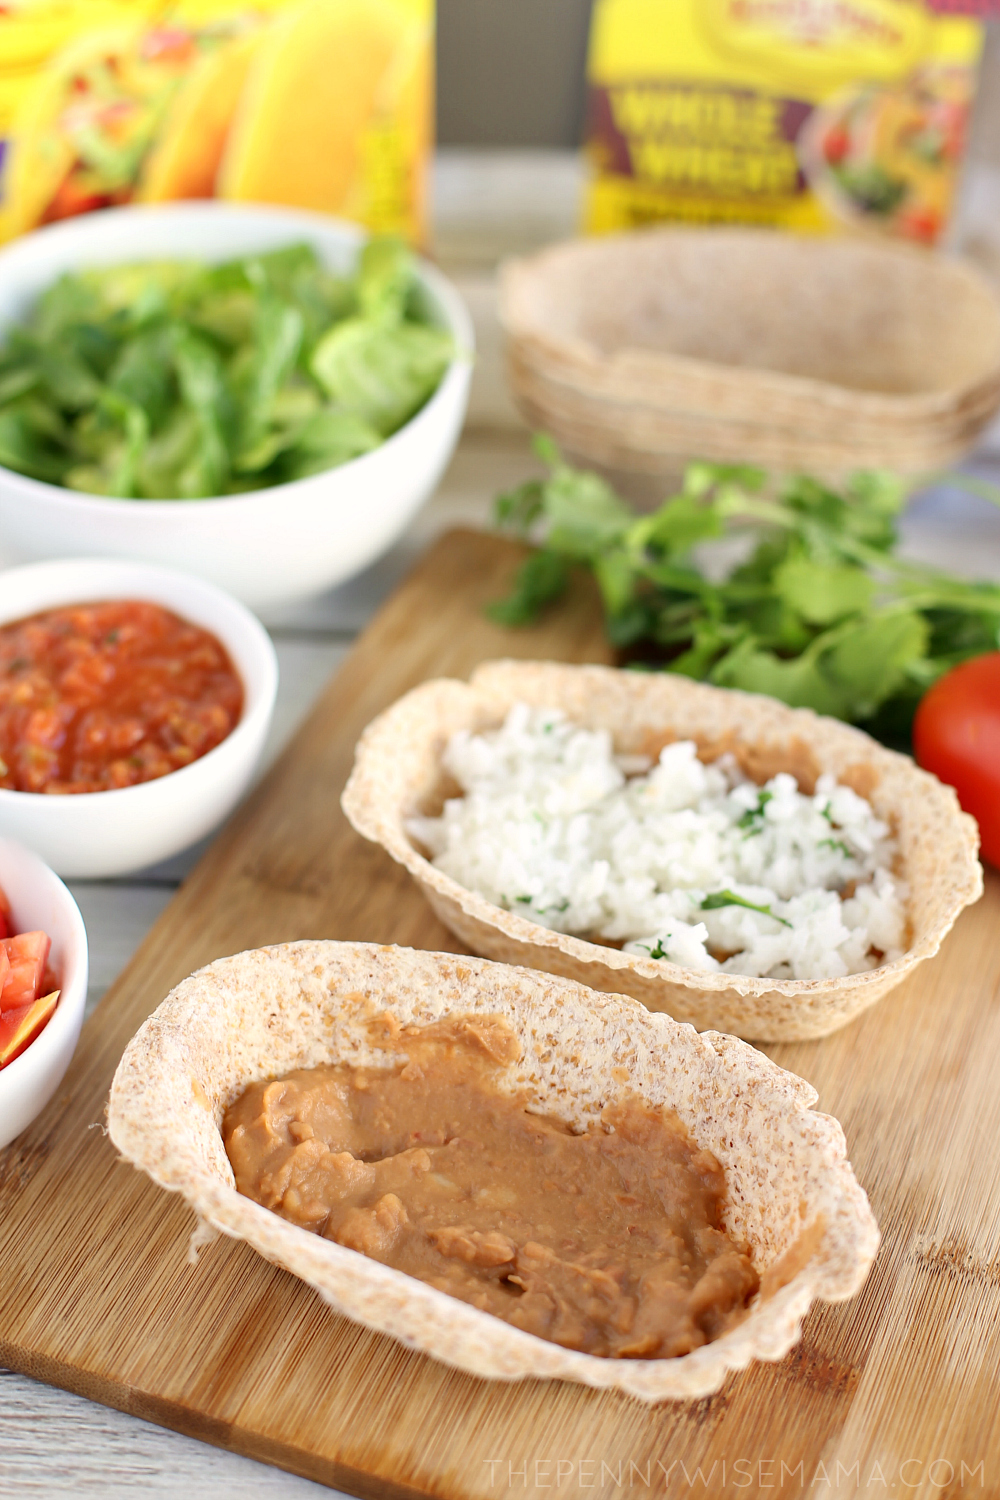 Chicken Burrito Bowls with edible tortilla boats